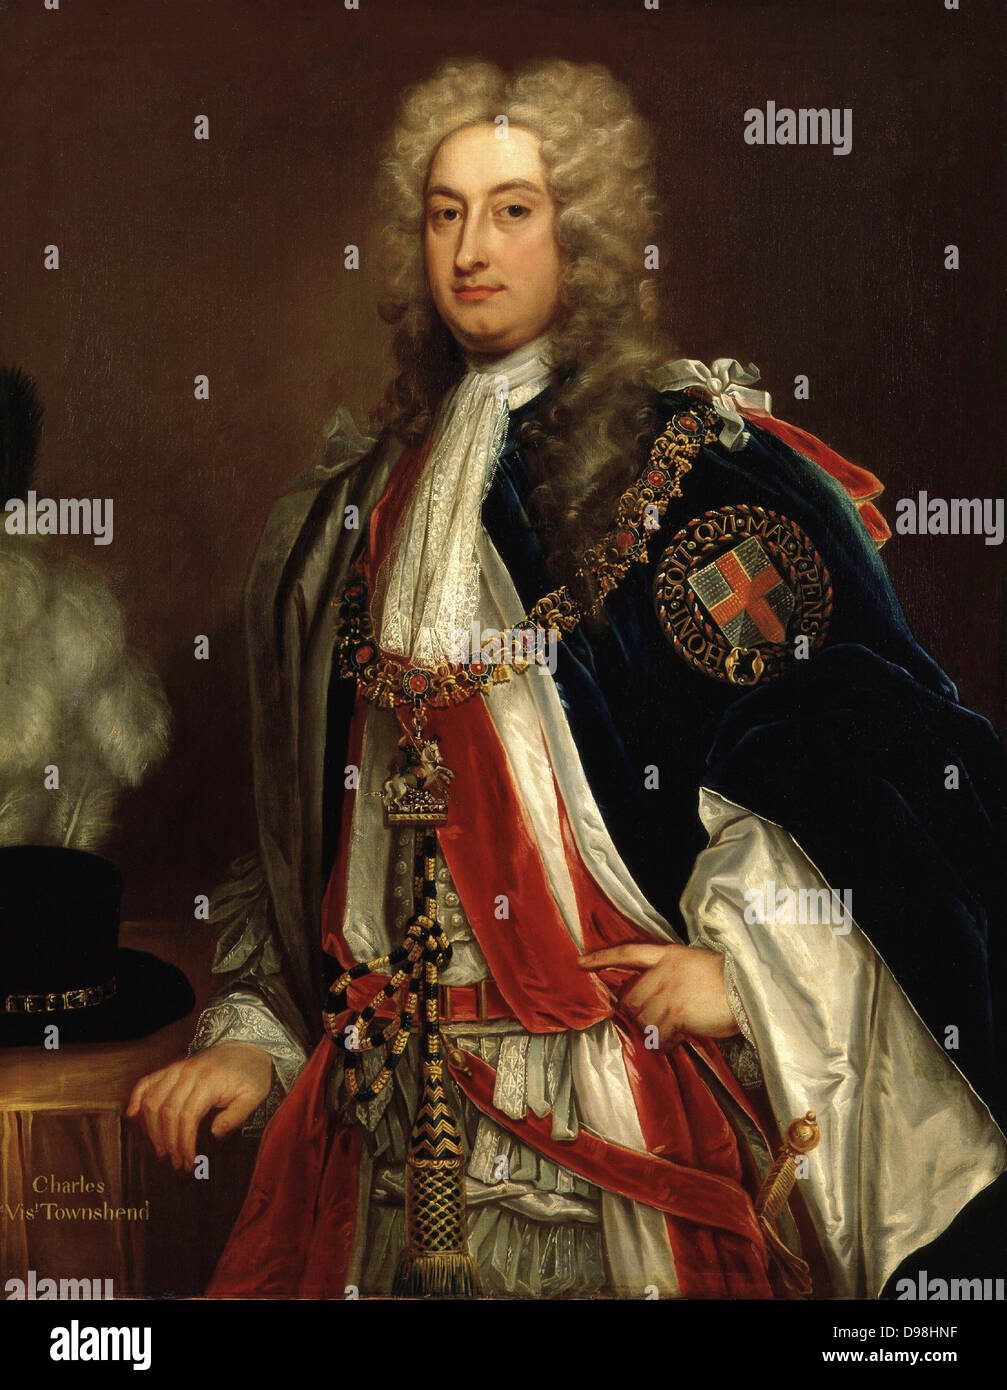 Charles Townshend, 2nd Viscount Townshend Bt, KG, PC (18 April 1674 – 21 June 1738) British Whig statesman. He served - Stock Image